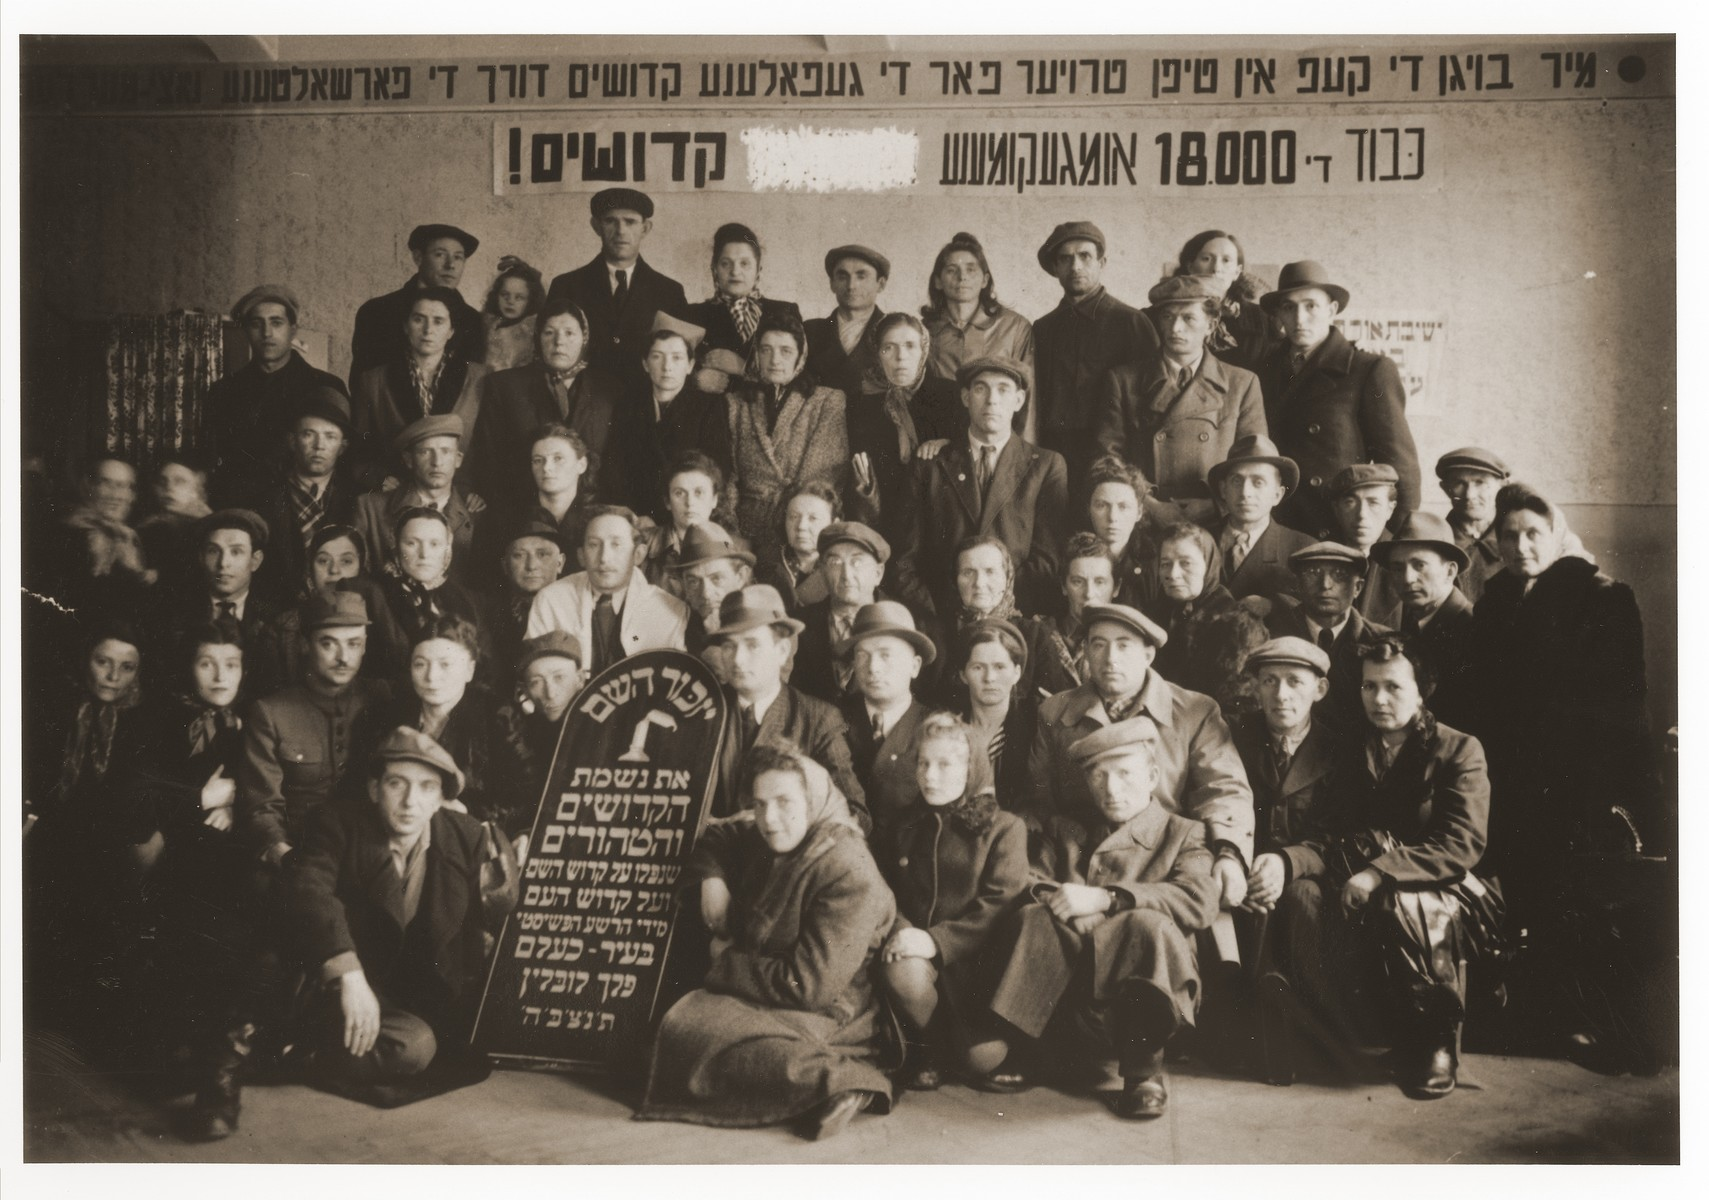 Group portrait of survivors from Chelm attending a memorial reunion on the [fifth?] anniversary of the destruction of the Jewish community in Chelm.  Among those pictured is Yakov Alster (seated on far right). Also pictured is Pinchos Feldman (second row from the top, seventh from the left with a hand on his shoulder)